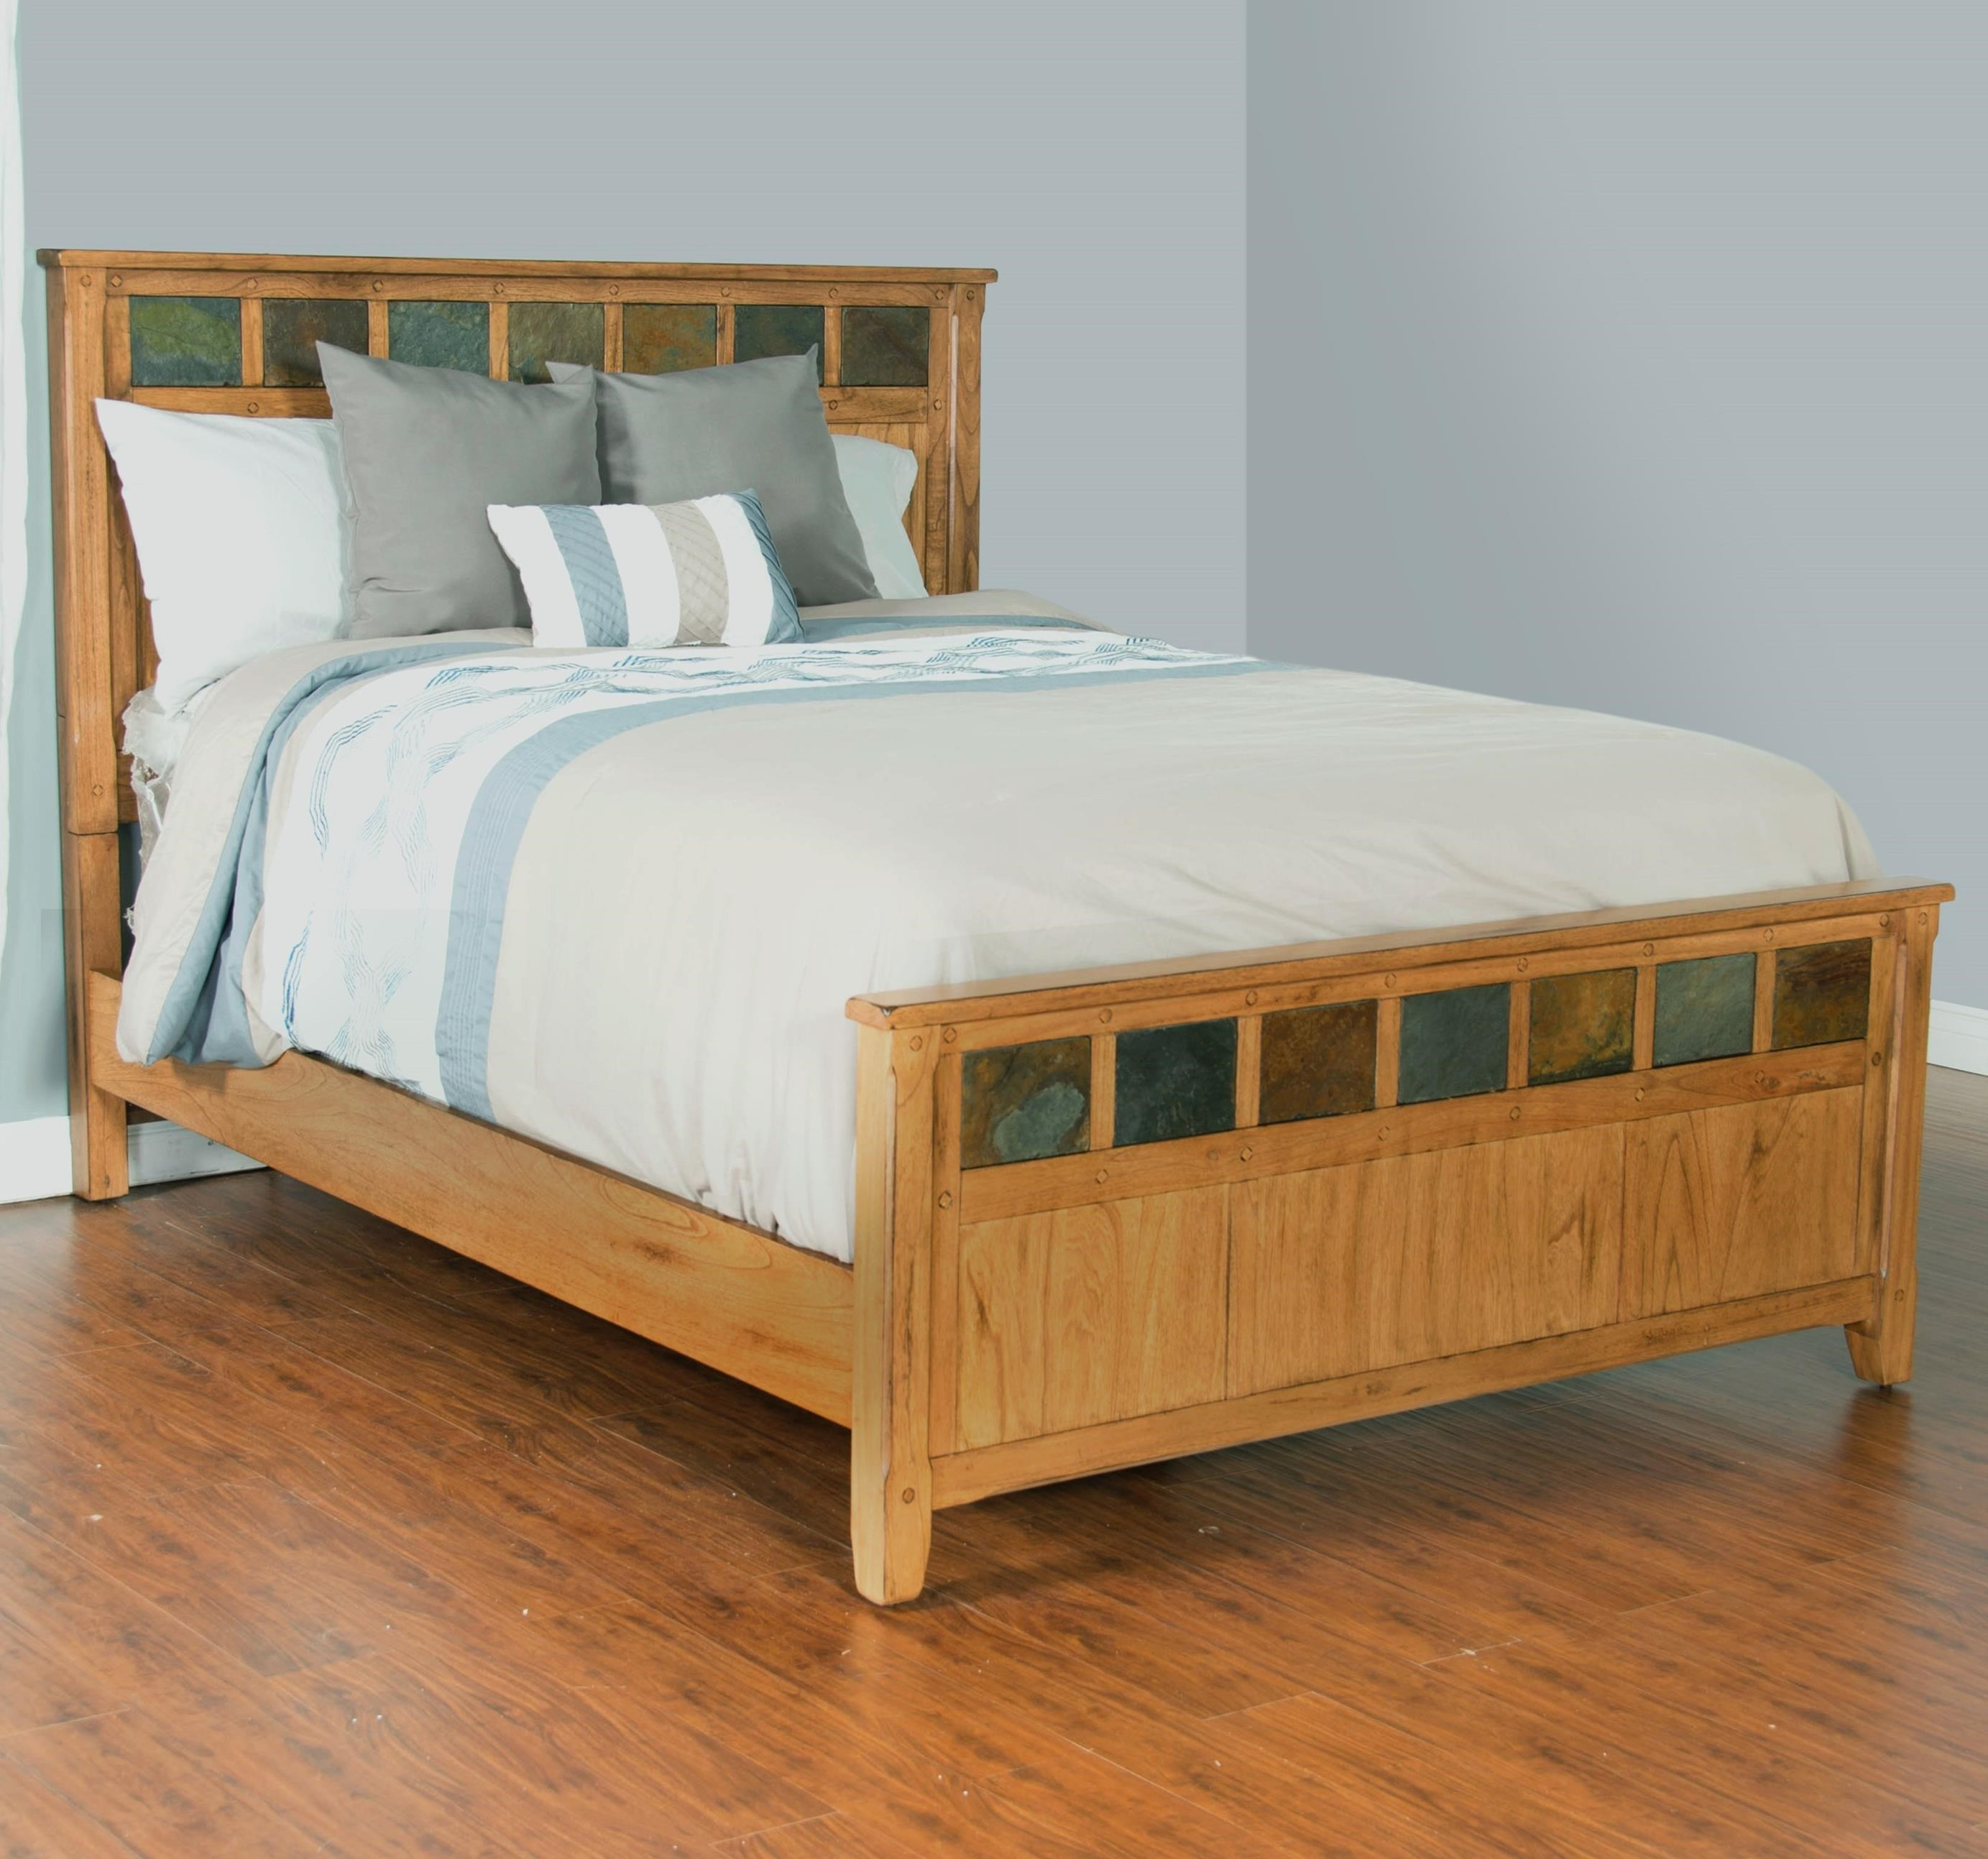 Sunny designs sedona queen bed with slate tiles conlin 39 s furniture panel beds for Sunny designs bedroom furniture